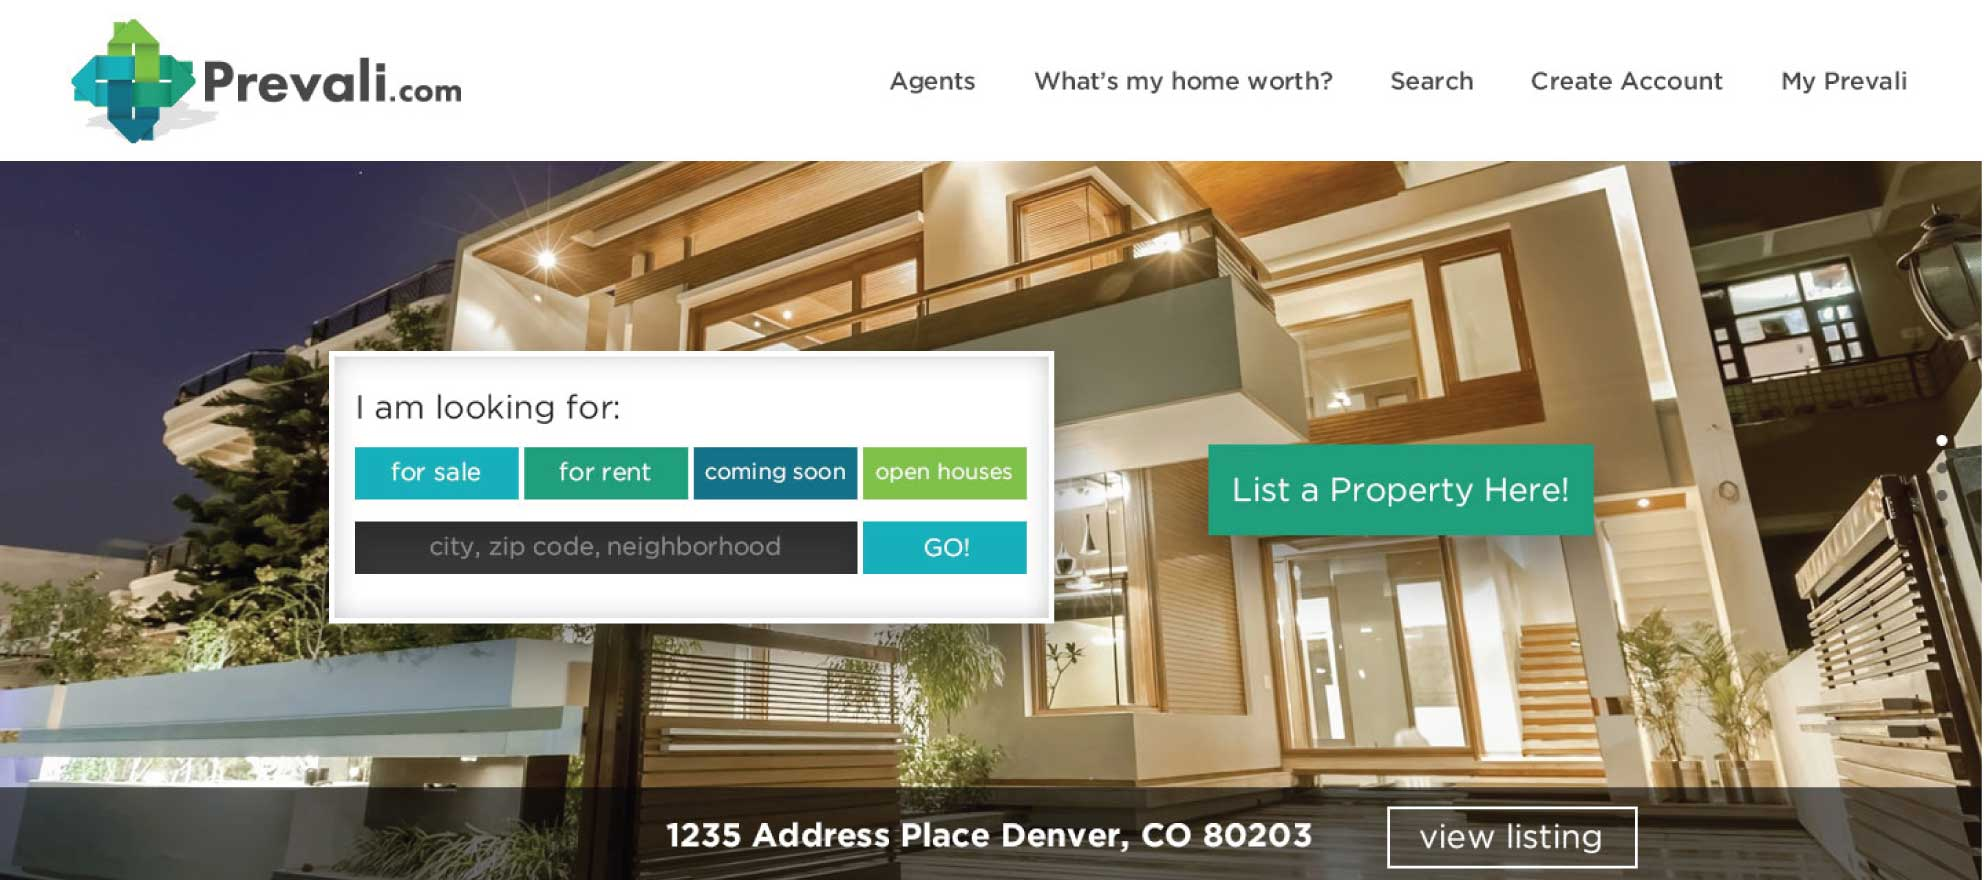 Pocket listing marketplace out to supplement MLS, but will it?